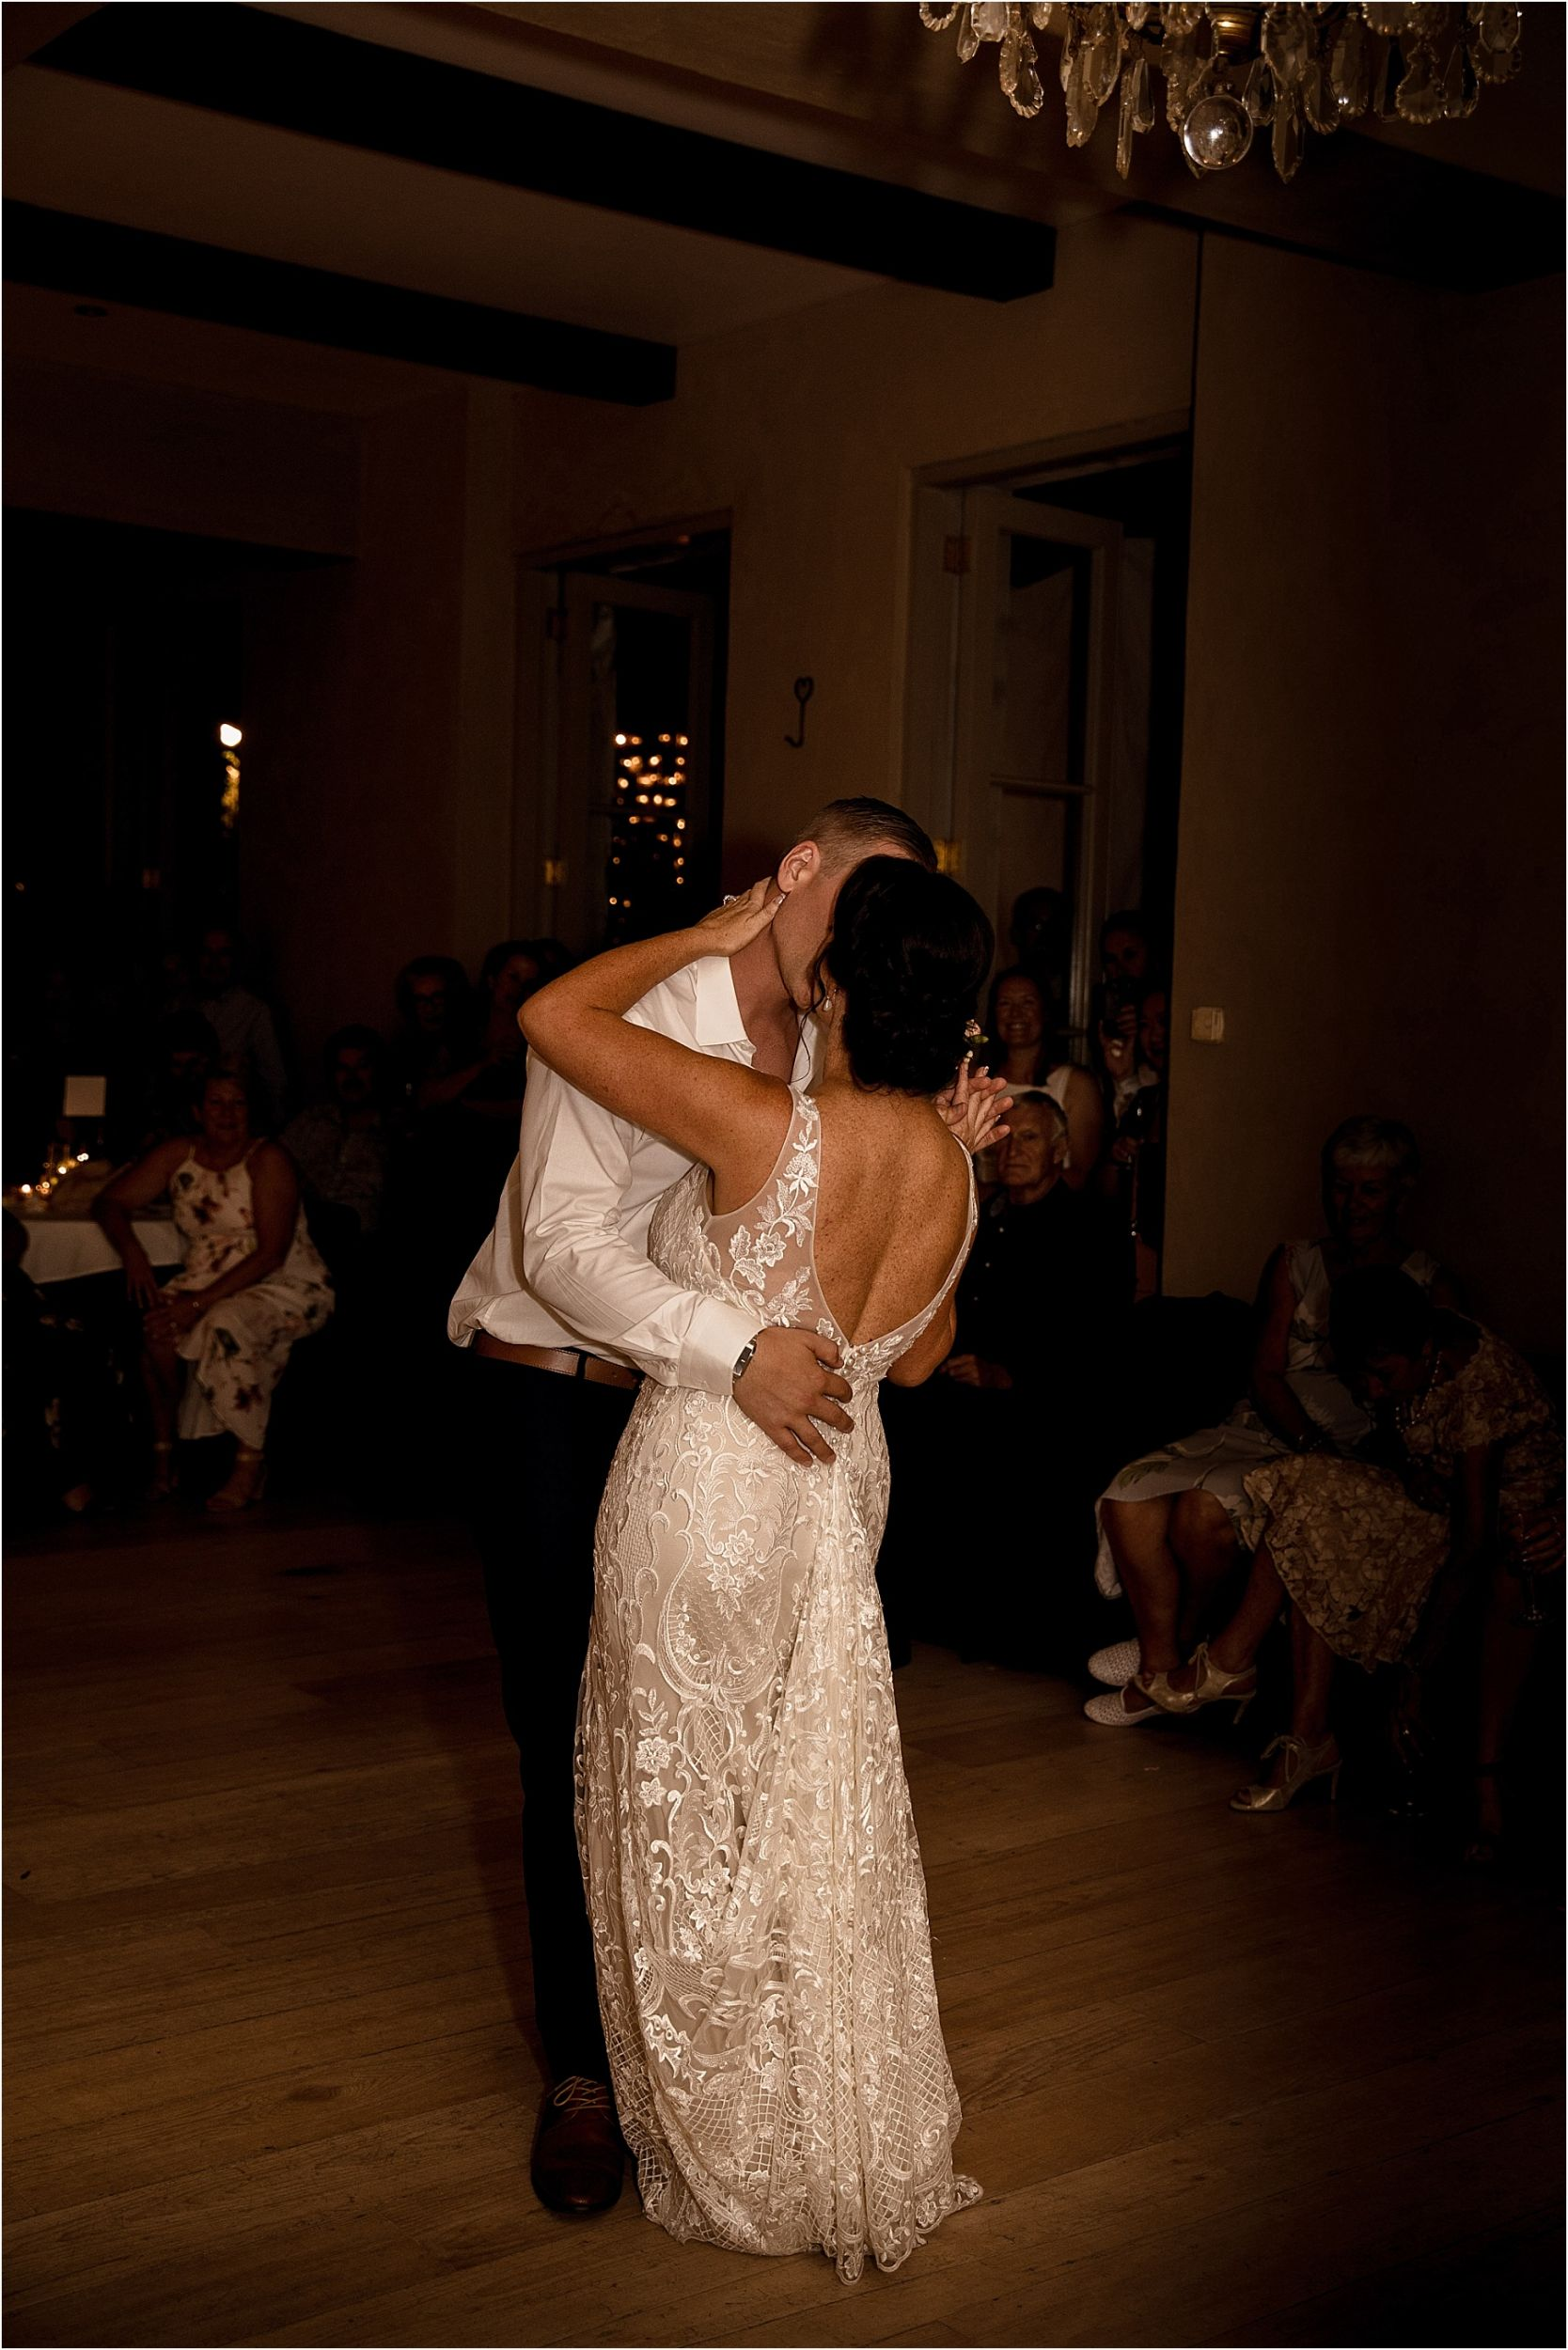 Matt & Amanda Mantell's Wedding-189.jpg